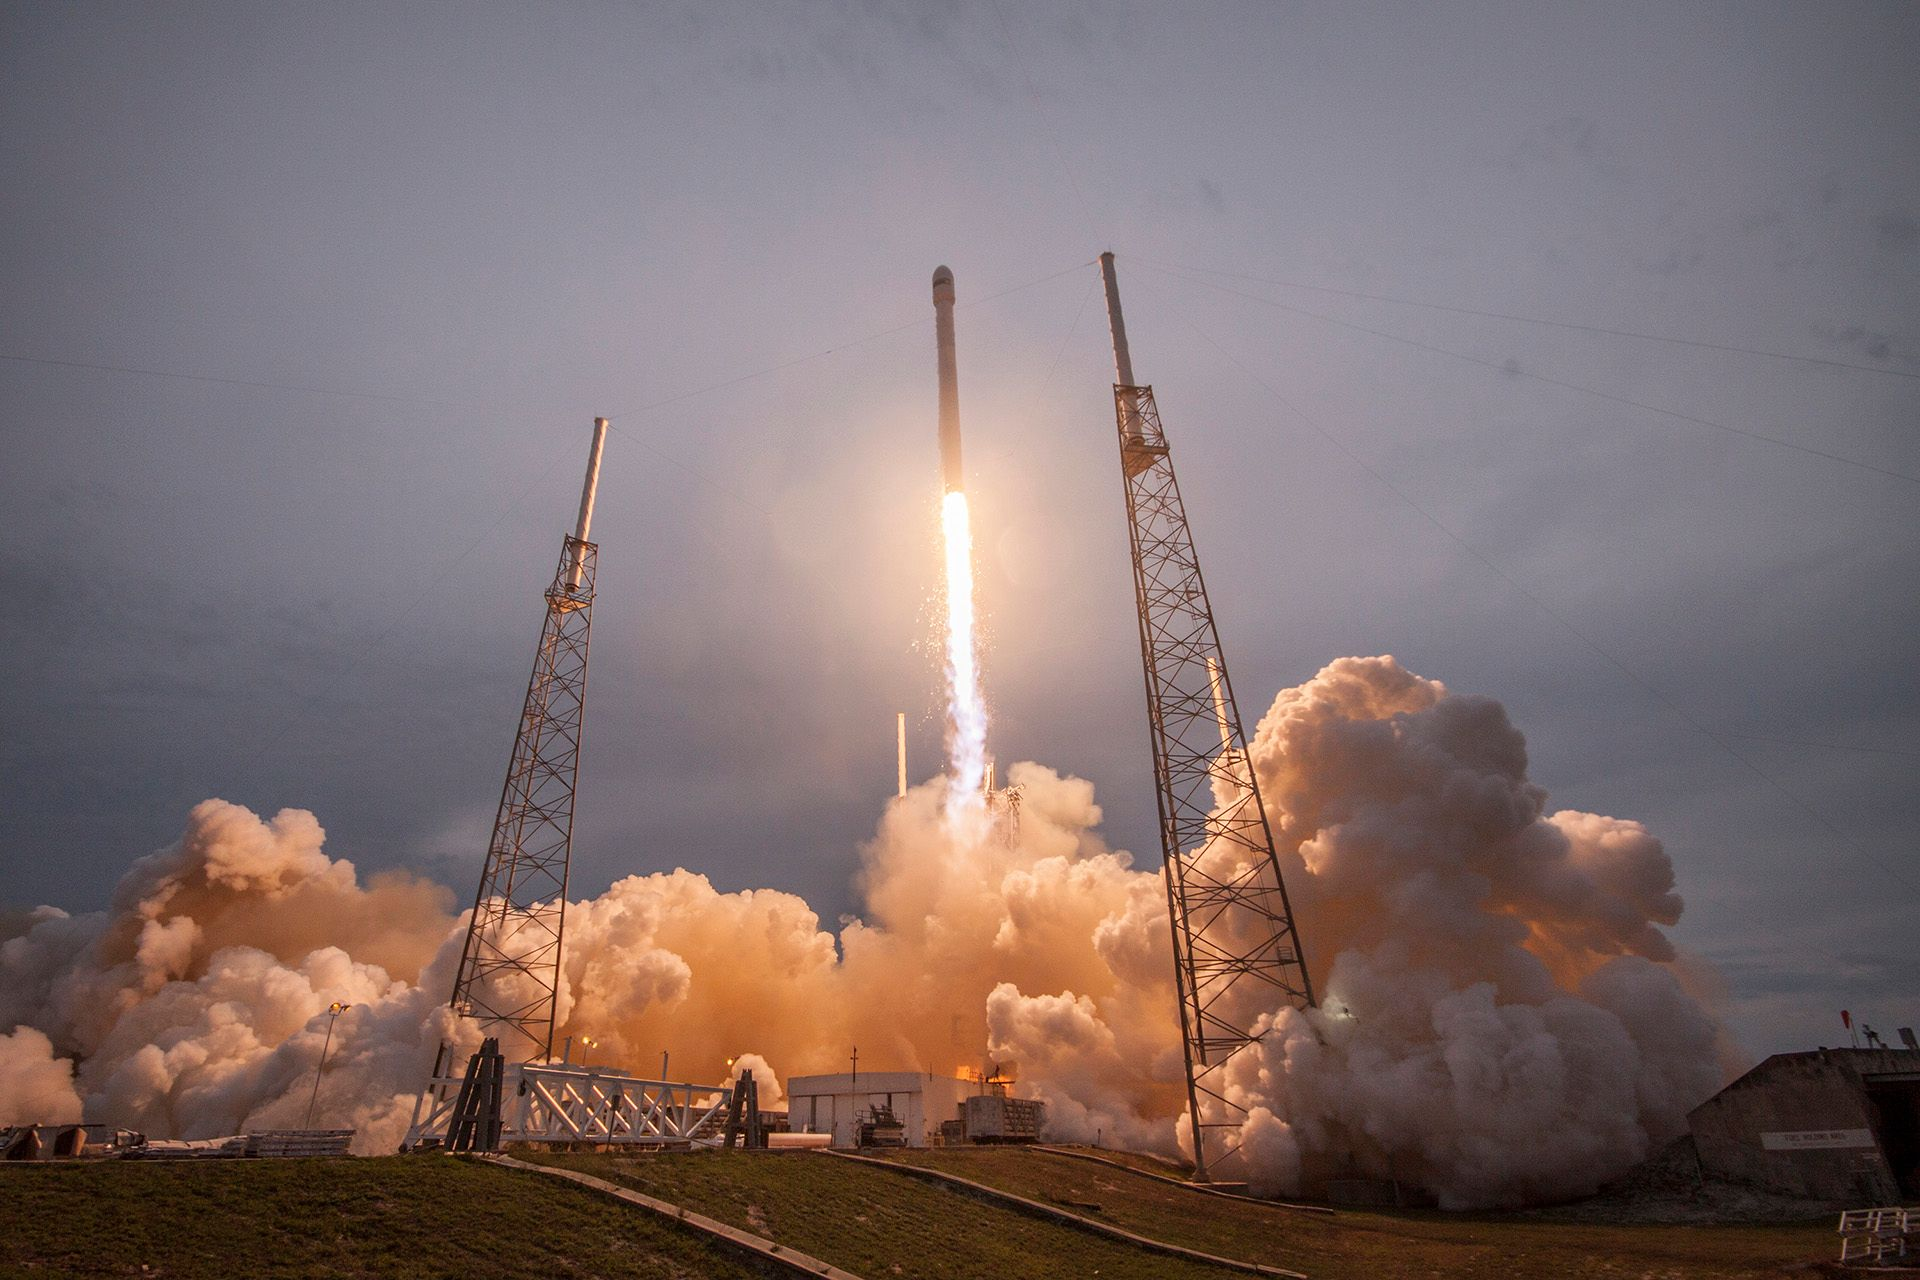 SpaceX - The New Space Race